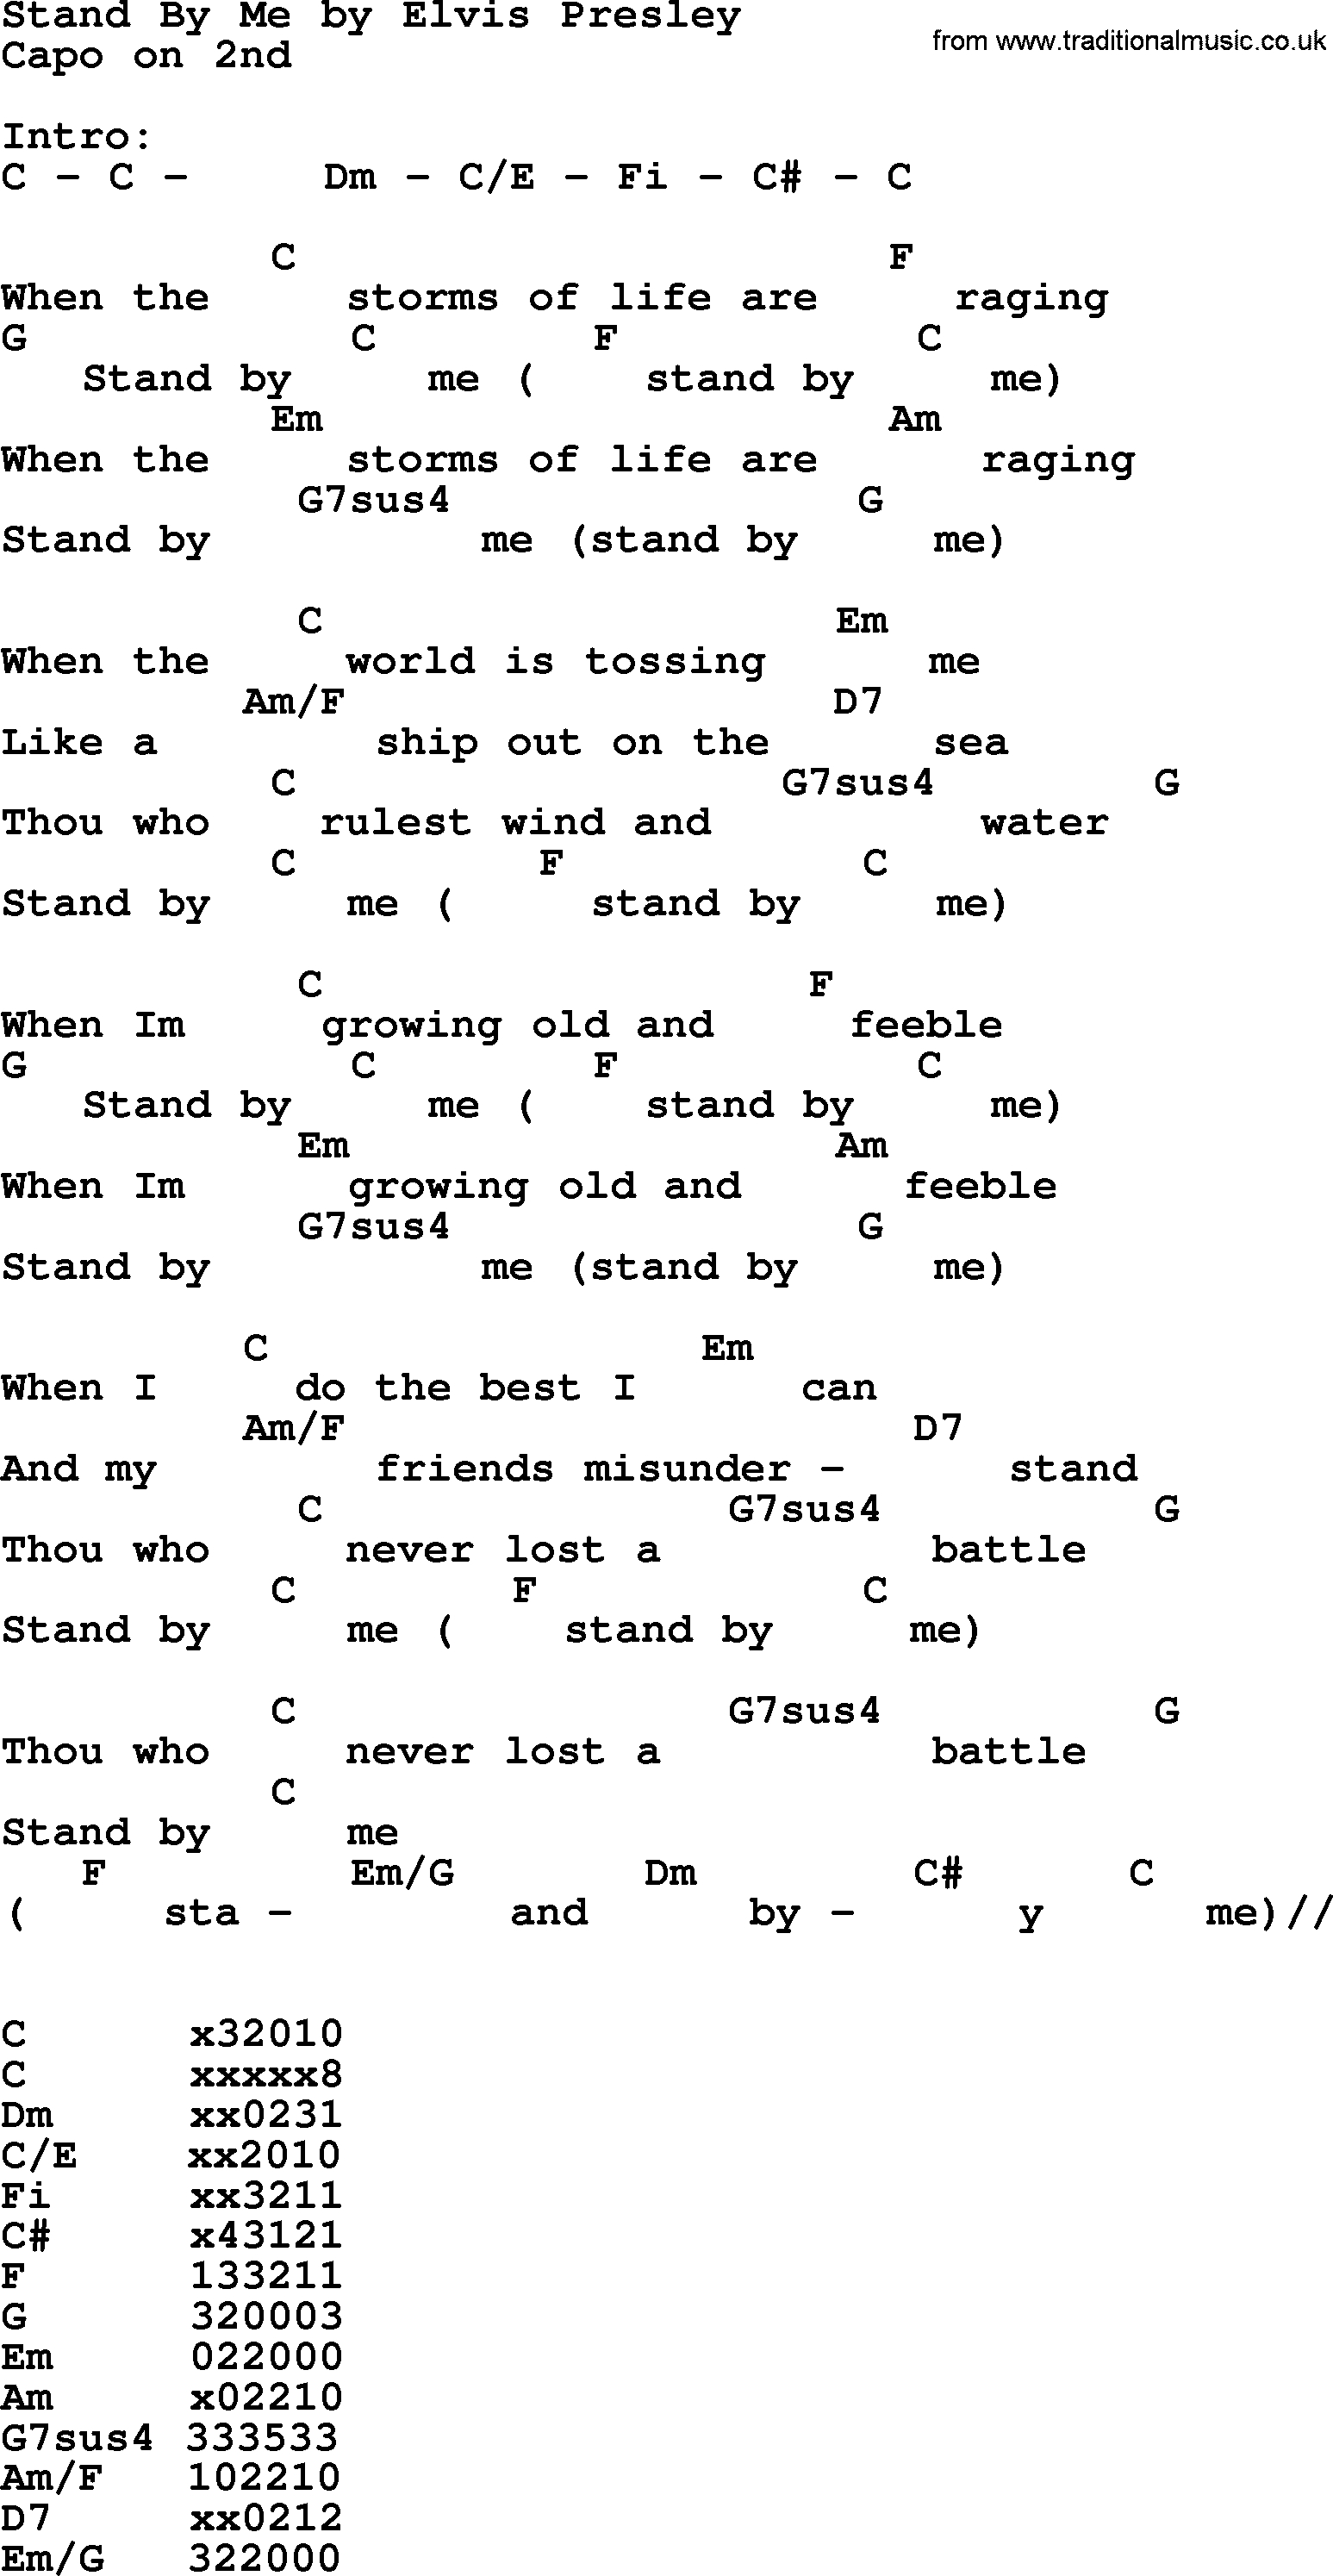 Stand By Me Chords Stand Me Elvis Presley Lyrics And Chords